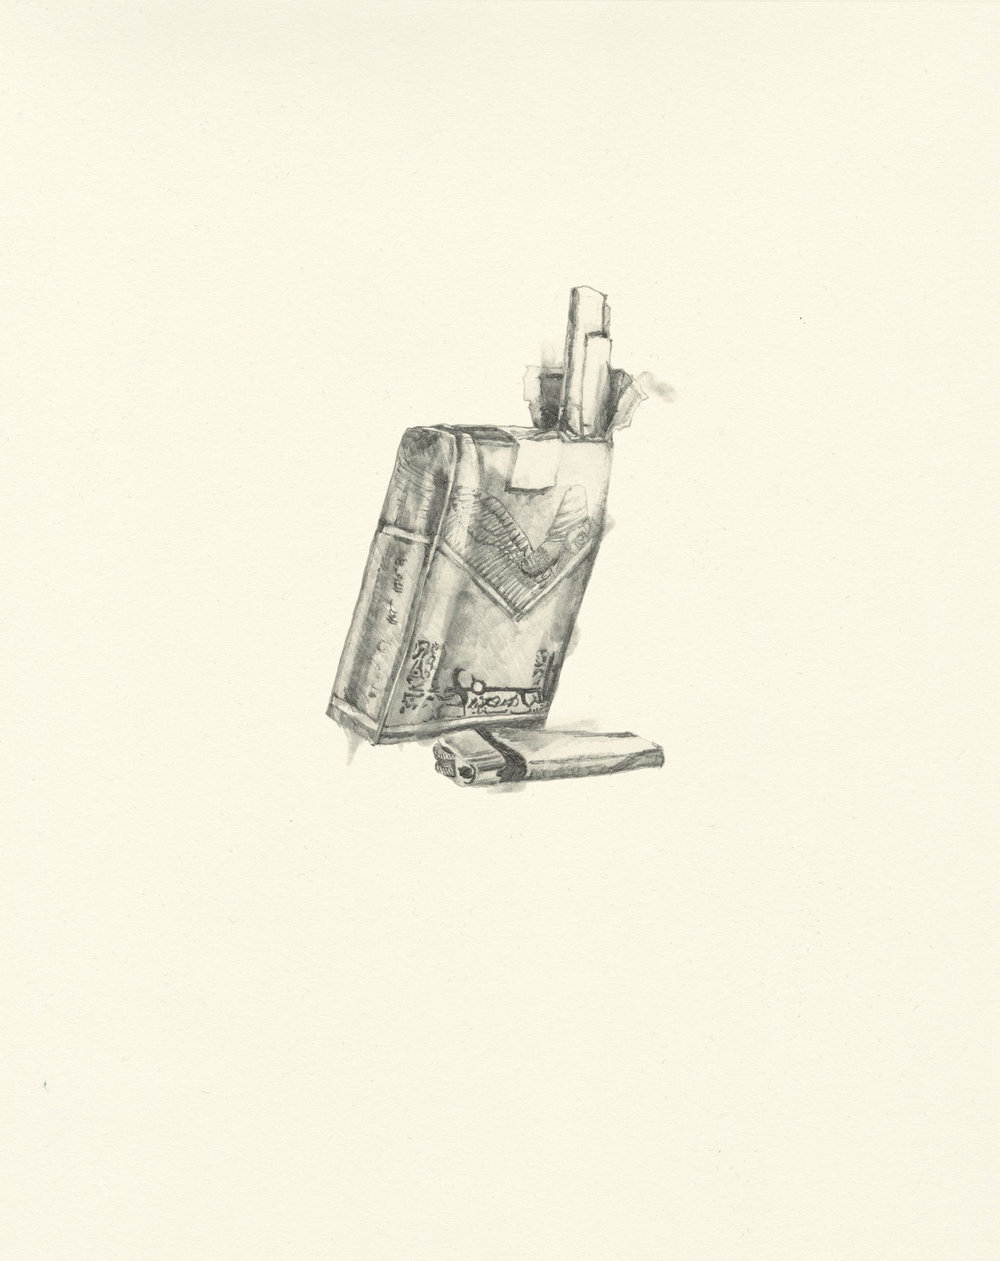 My Boyfriend is a Peacekeeper ix  | graphite on paper | 9.5INx12IN   Excerpt from My Boyfriend is a Peacekeeper Book:  They burn everything here - cigarette pack labels have taken on a more global kind of self consciousness, like memento mori on the scale of  not individual but human tragedy. Death seeps through the stone cracks and embeds itself in pulp and plastic. Nothing is beyond corruptible. This explains my desire to start smoking, and I think that you should too.